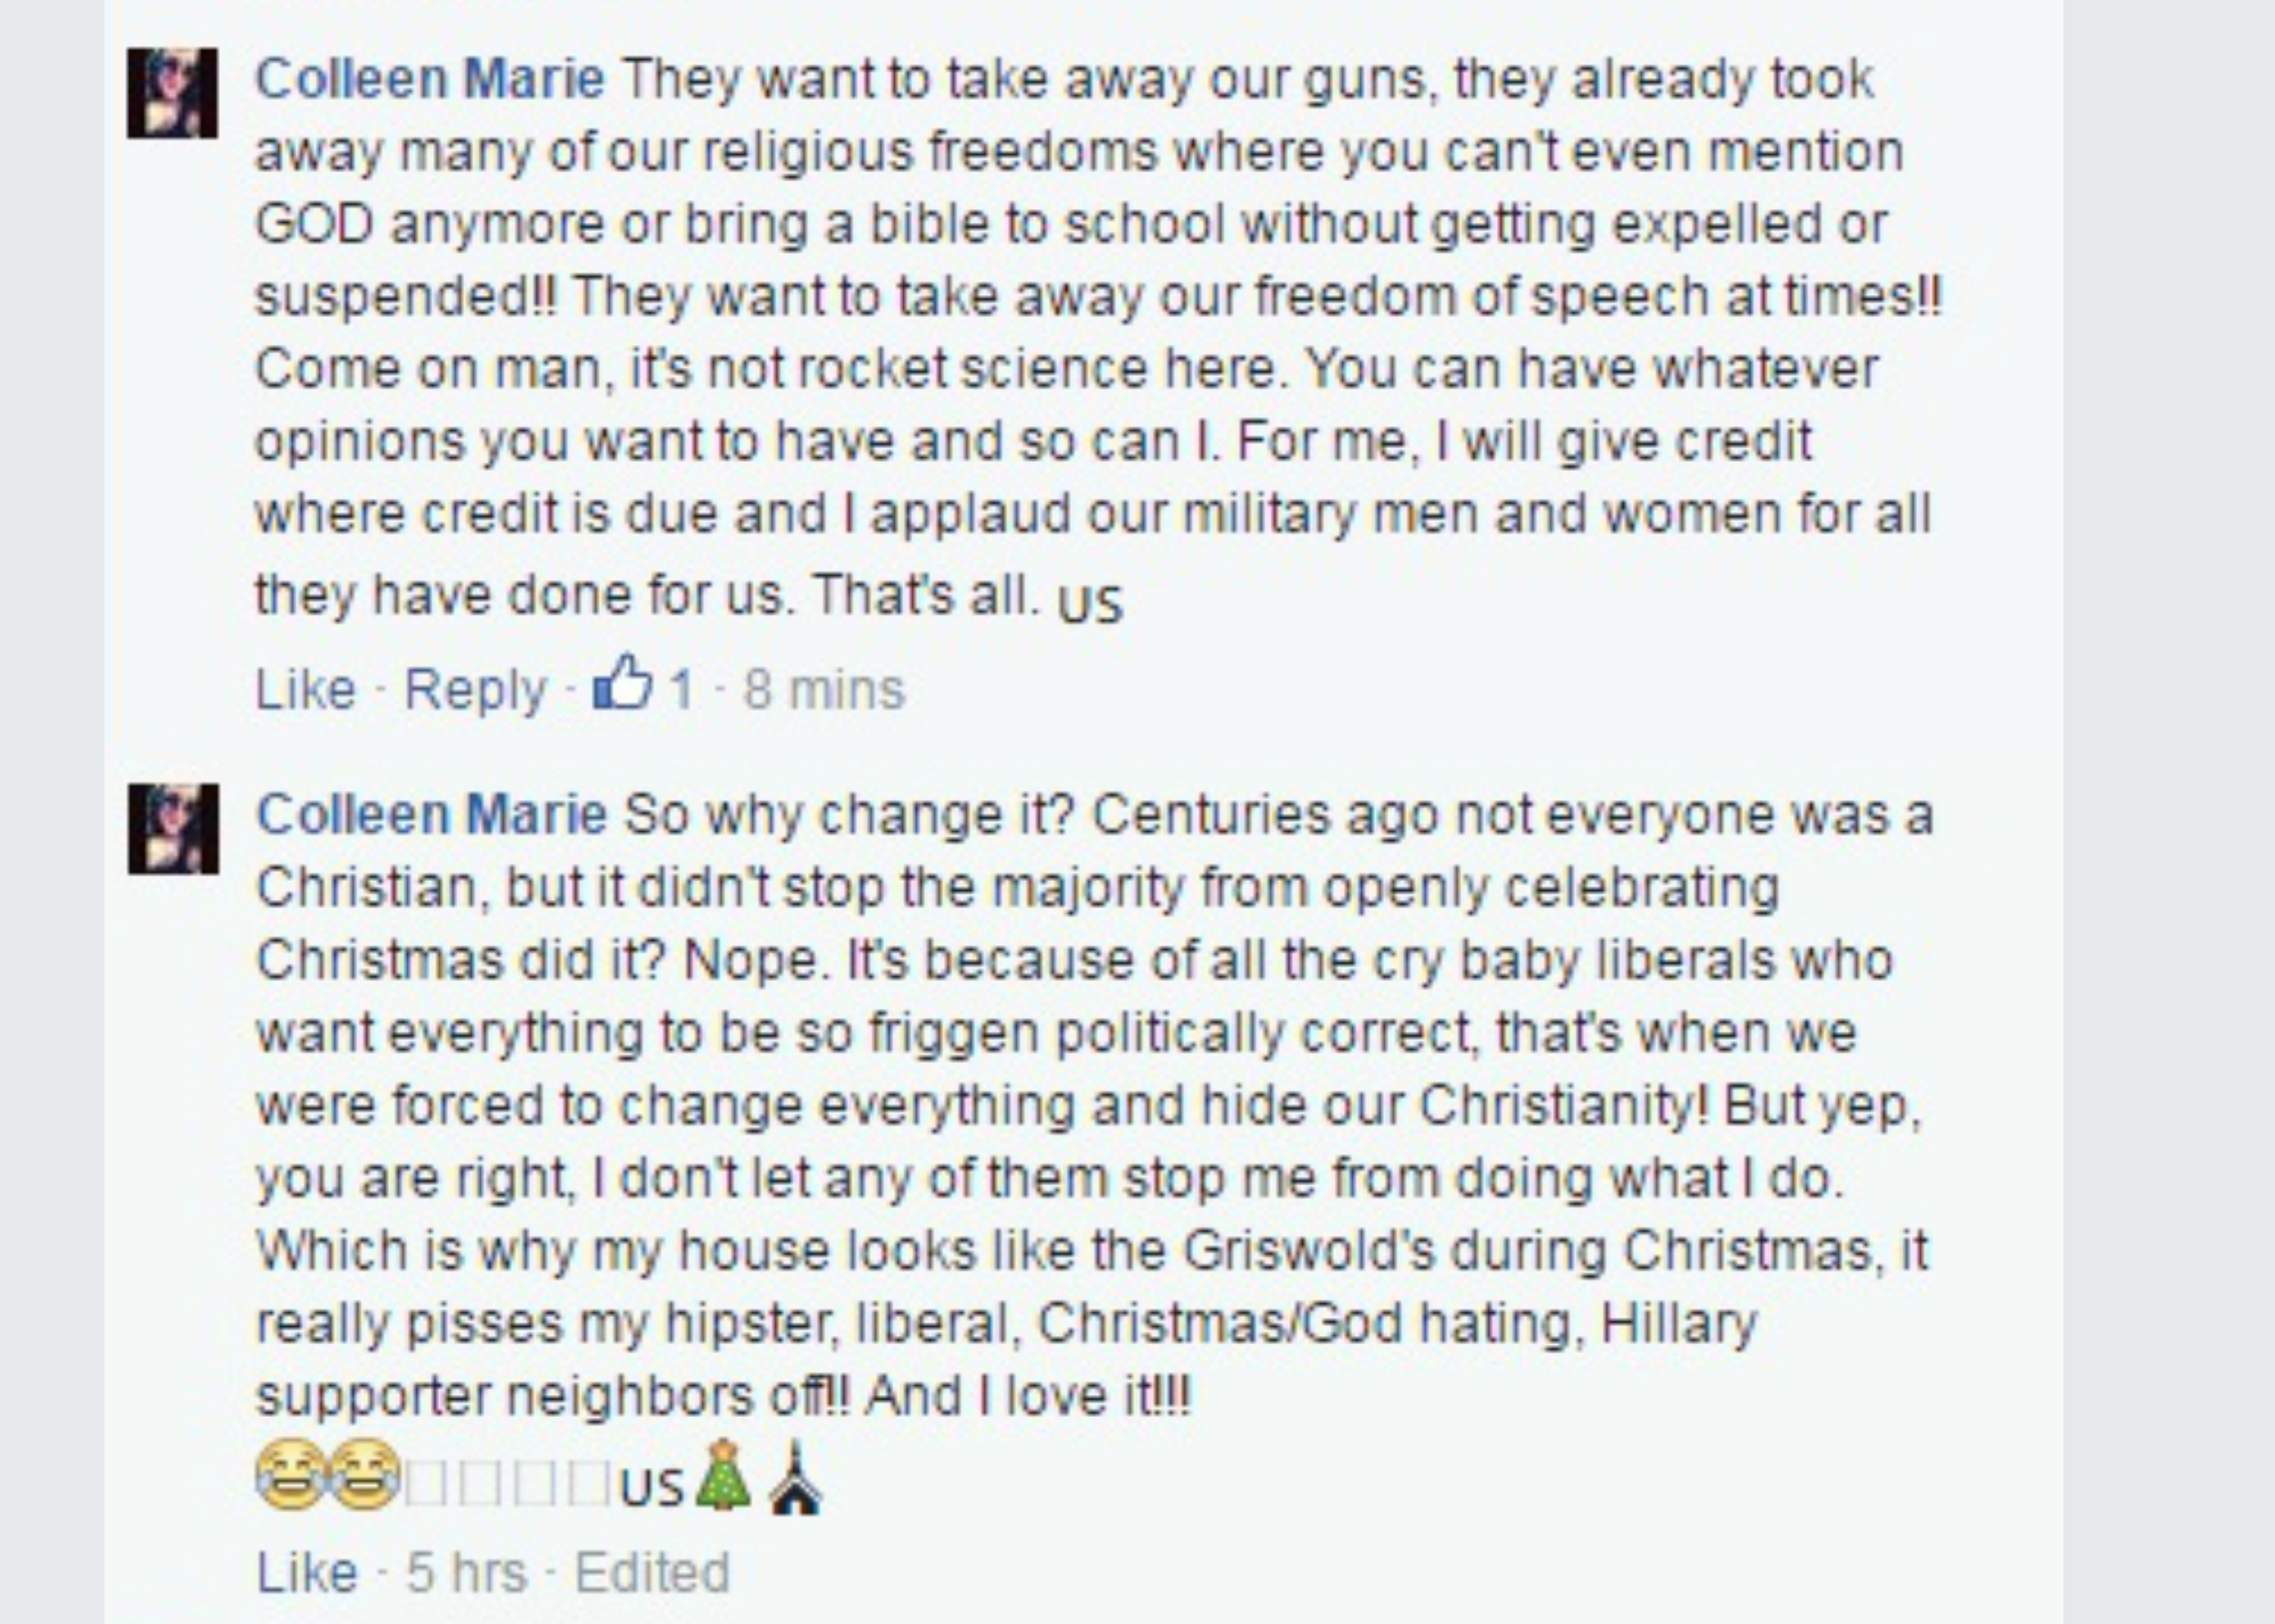 eastfallslocal-coll-marie-they-want-to-take-our-guns-christmas-etc